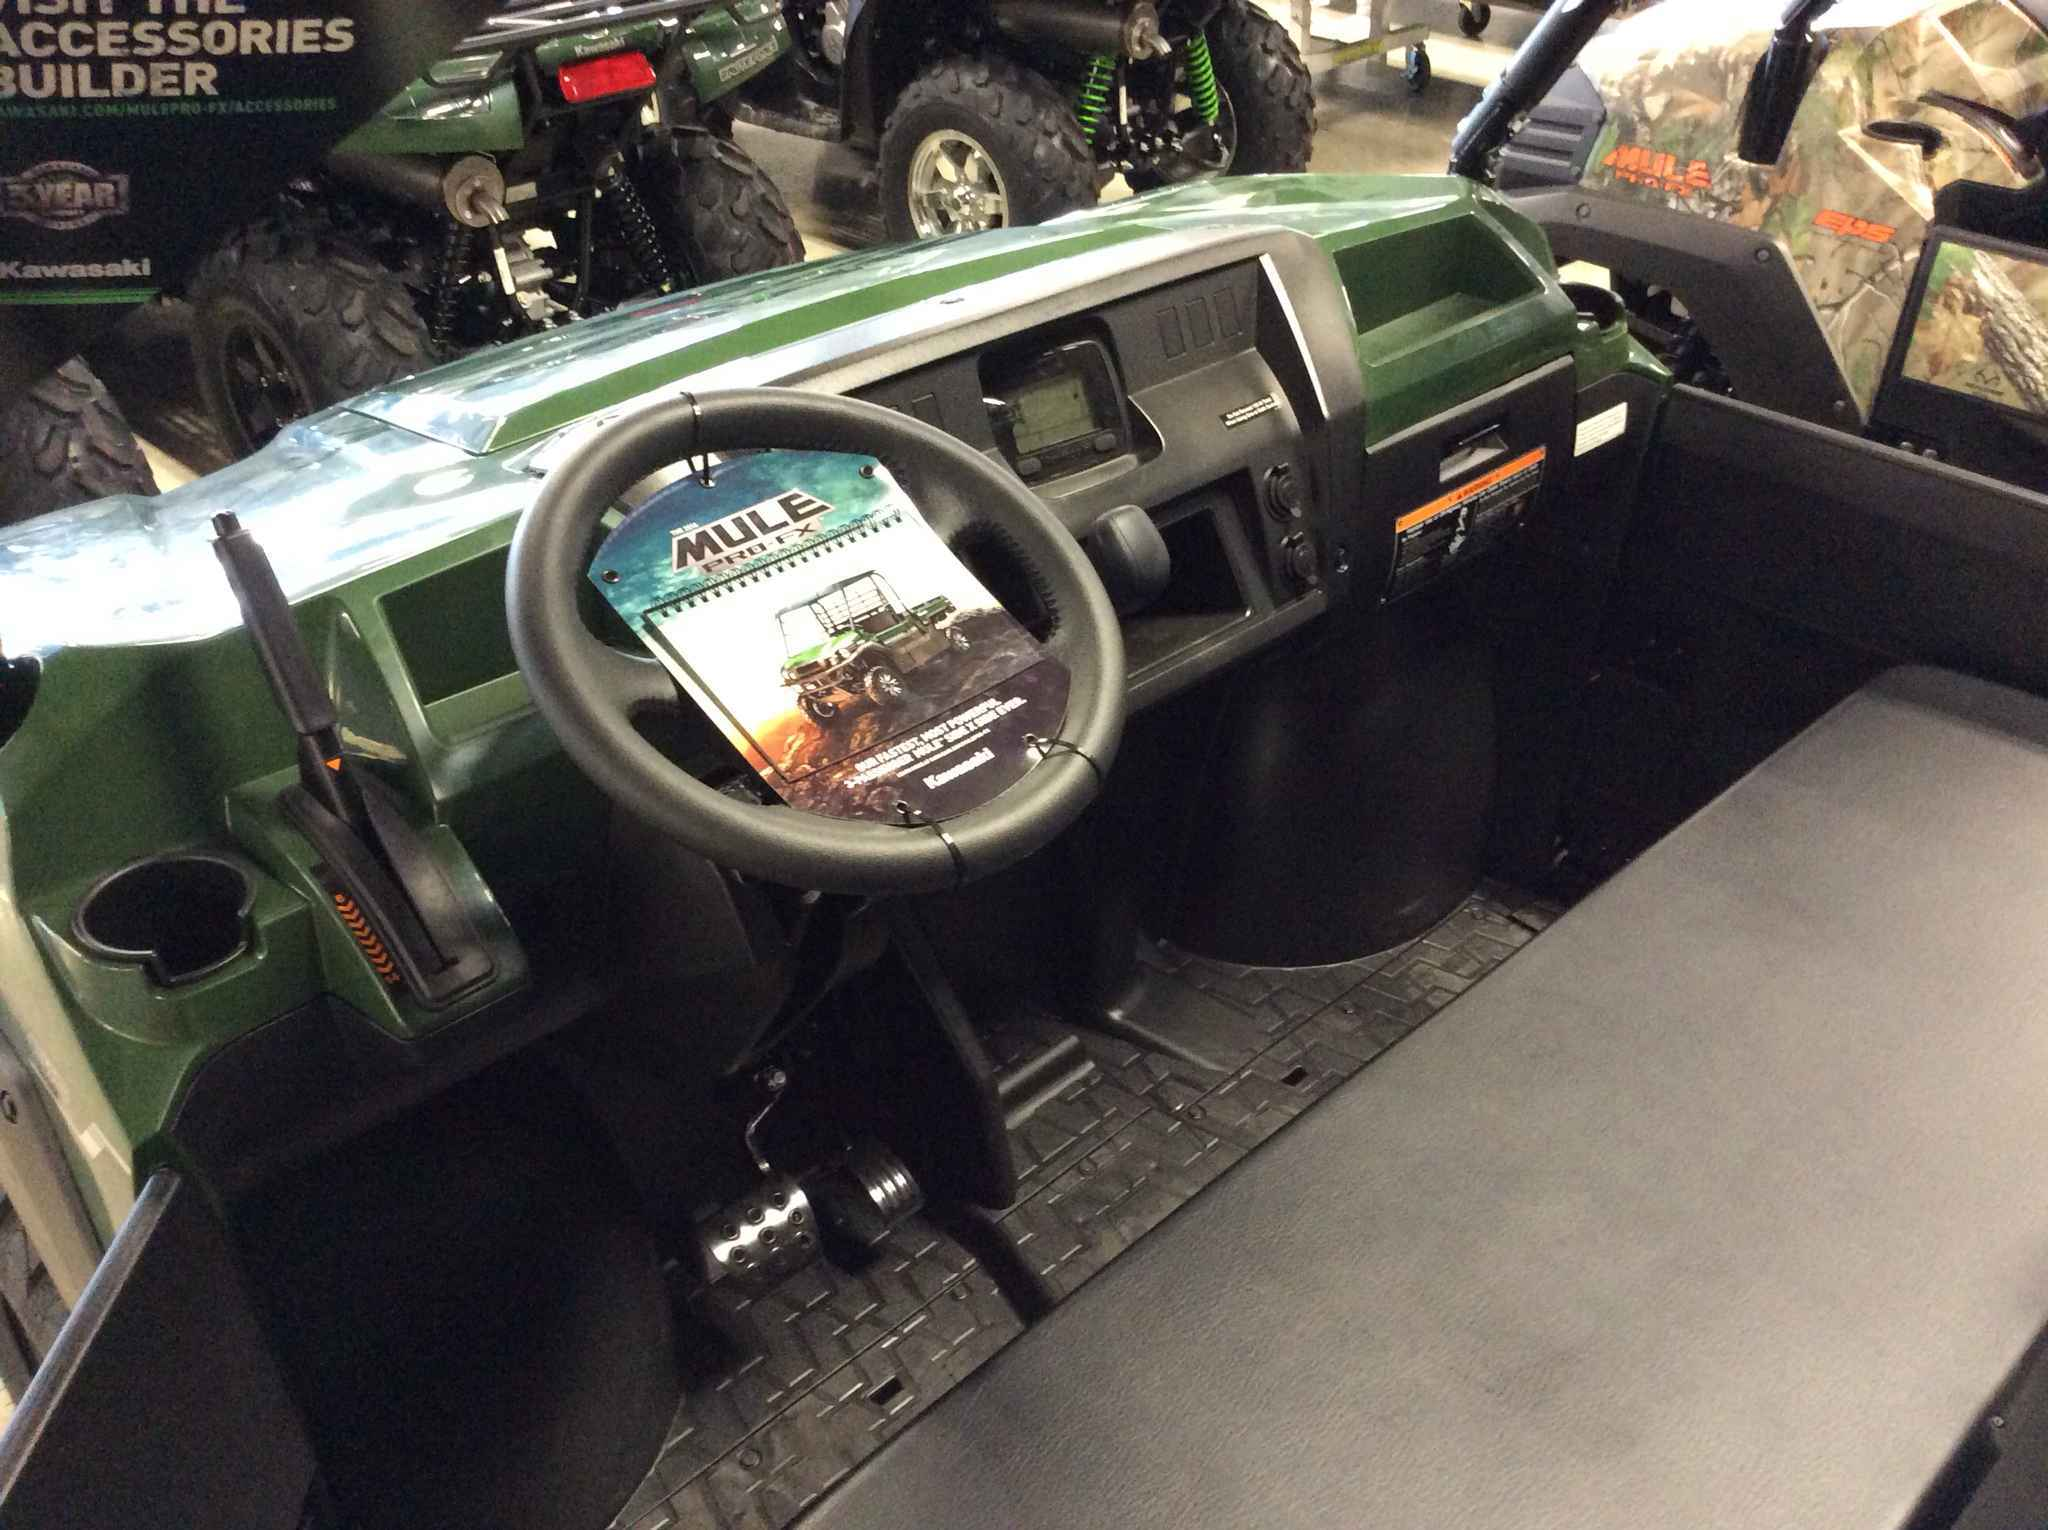 New 2016 Kawasaki MULE PRO-FXT EPS ATVs For Sale in New Jersey on  atvtrades com